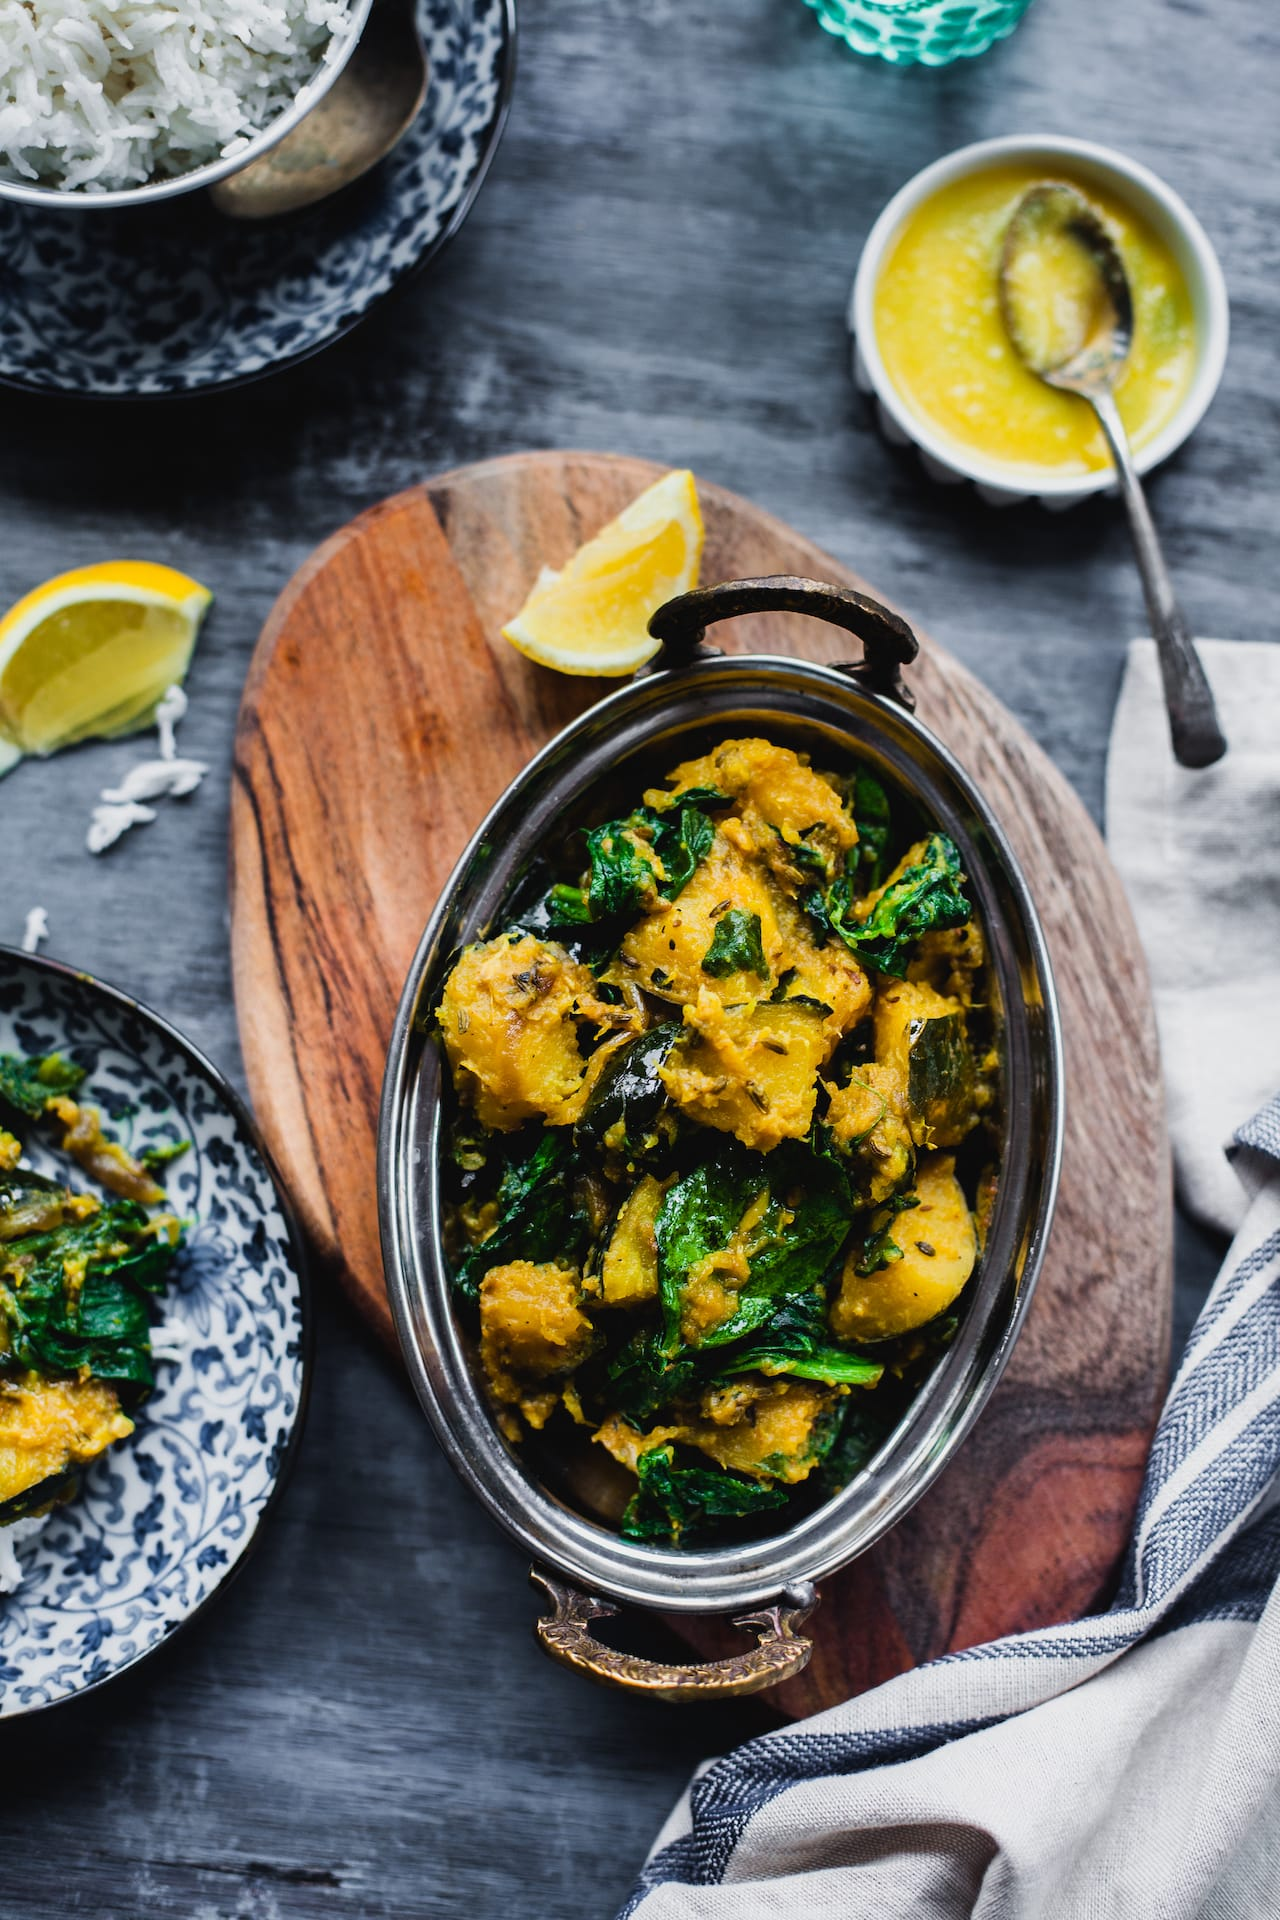 Kumro Palak (Acorn Squash And Spinach Stir Fry) | Playful Cooking #bengali #squash #spinach #indian #foodphotography